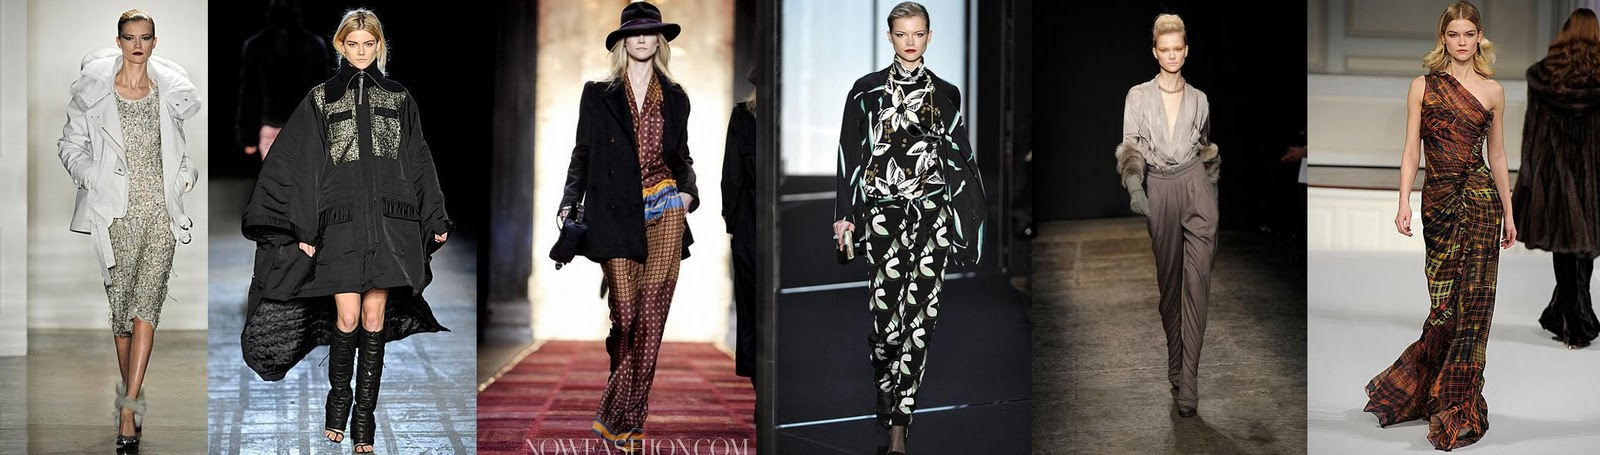 Poland in the world of fashion: NY FW catwalk shots.